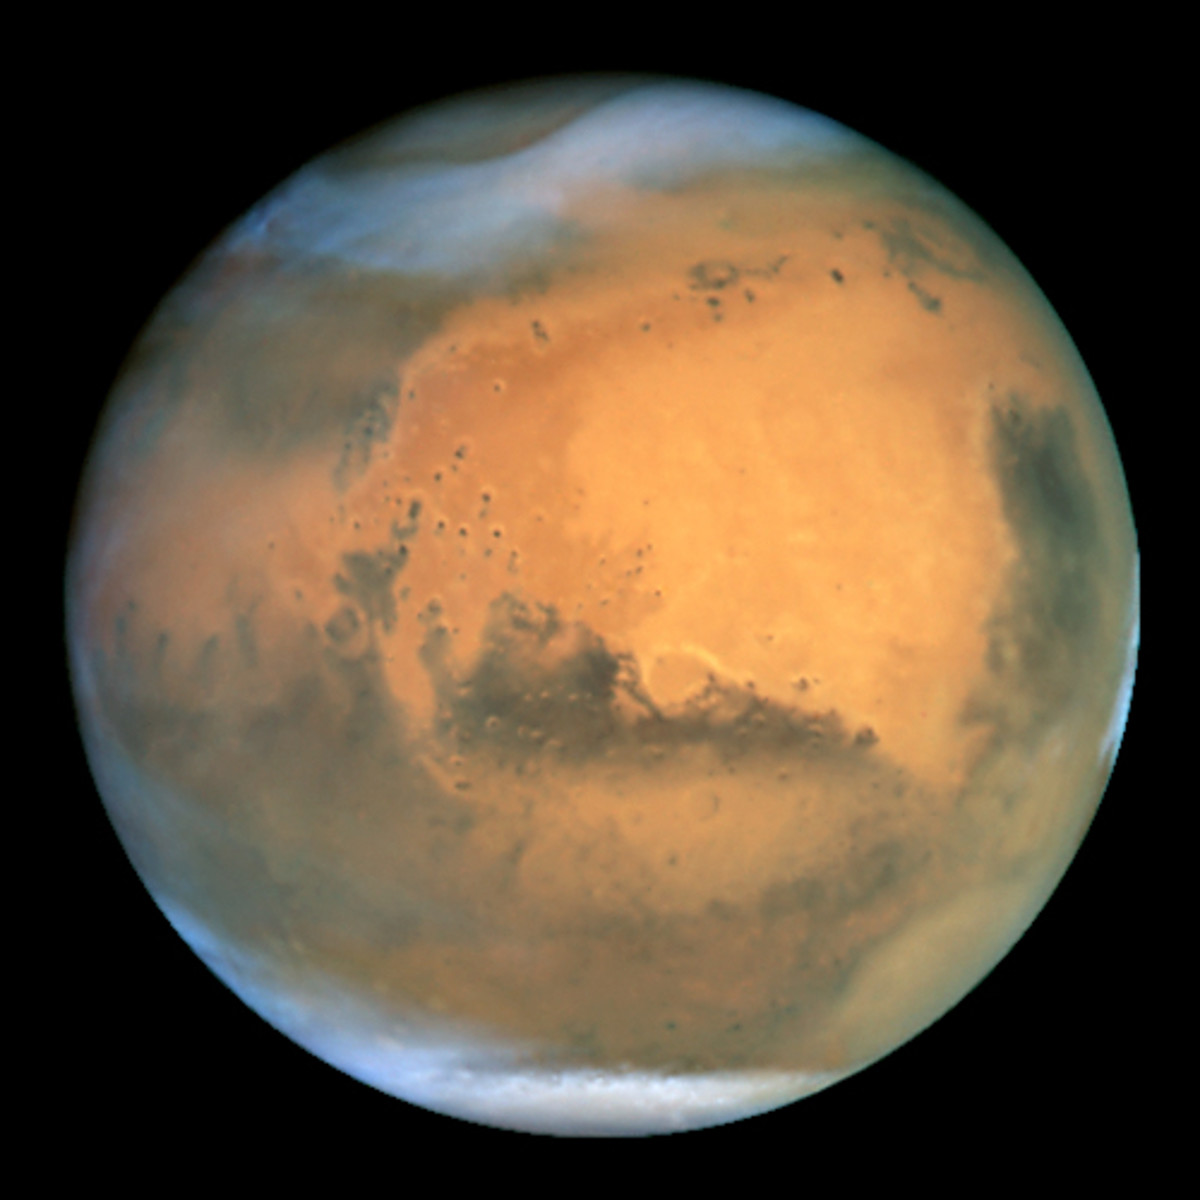 The planet Mars, named after the god of war because of its reddish (bloody) color.